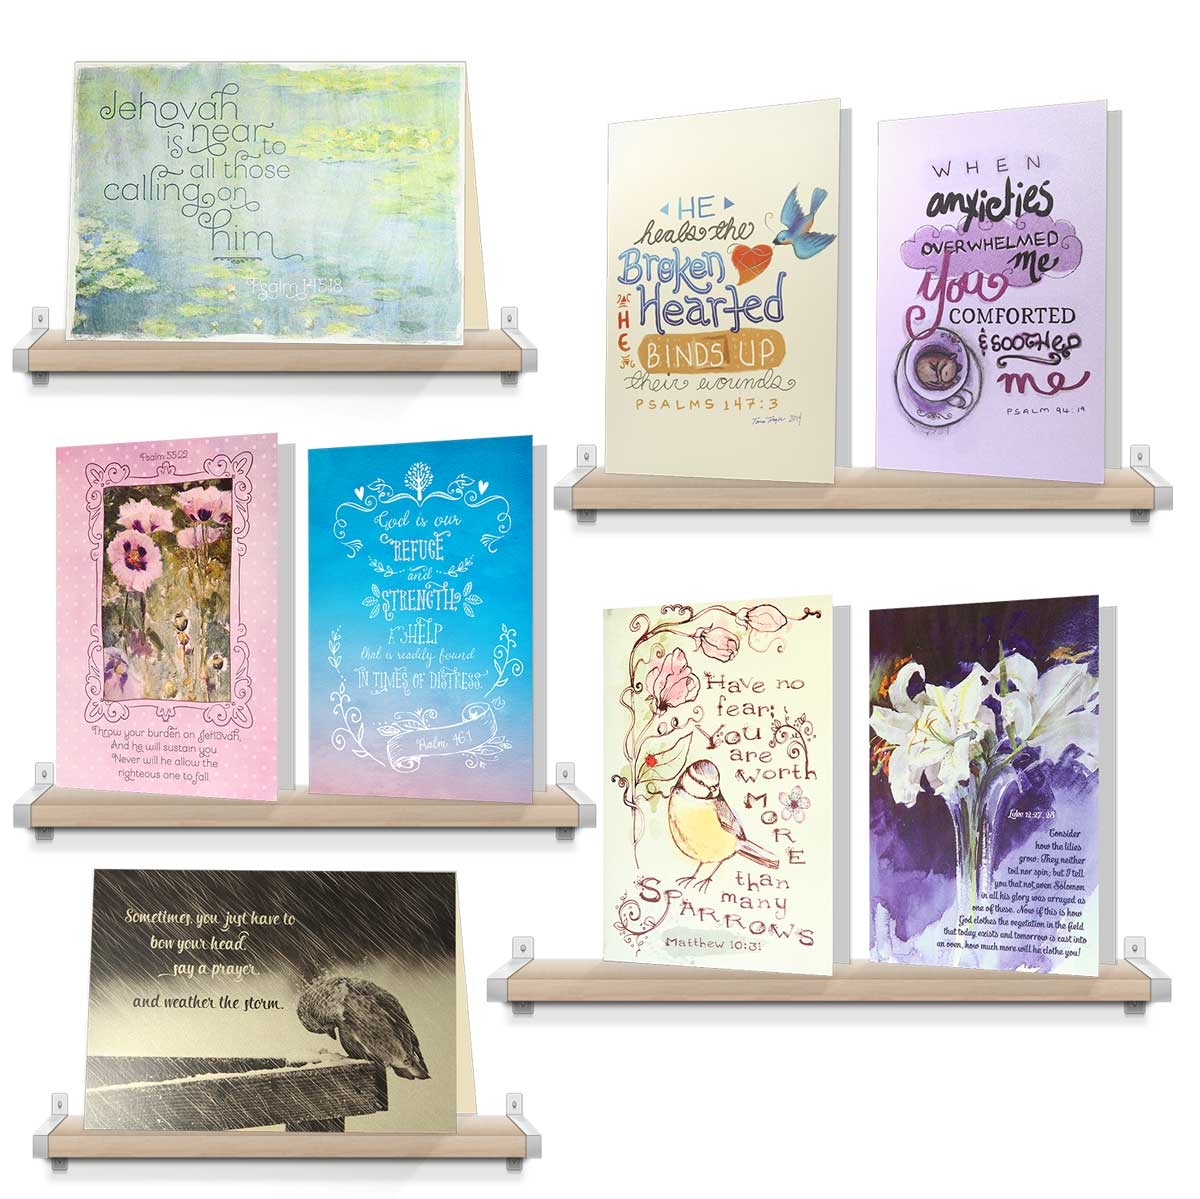 Comfort pack assorted encouraging greeting cards jw gifts view larger photo email m4hsunfo